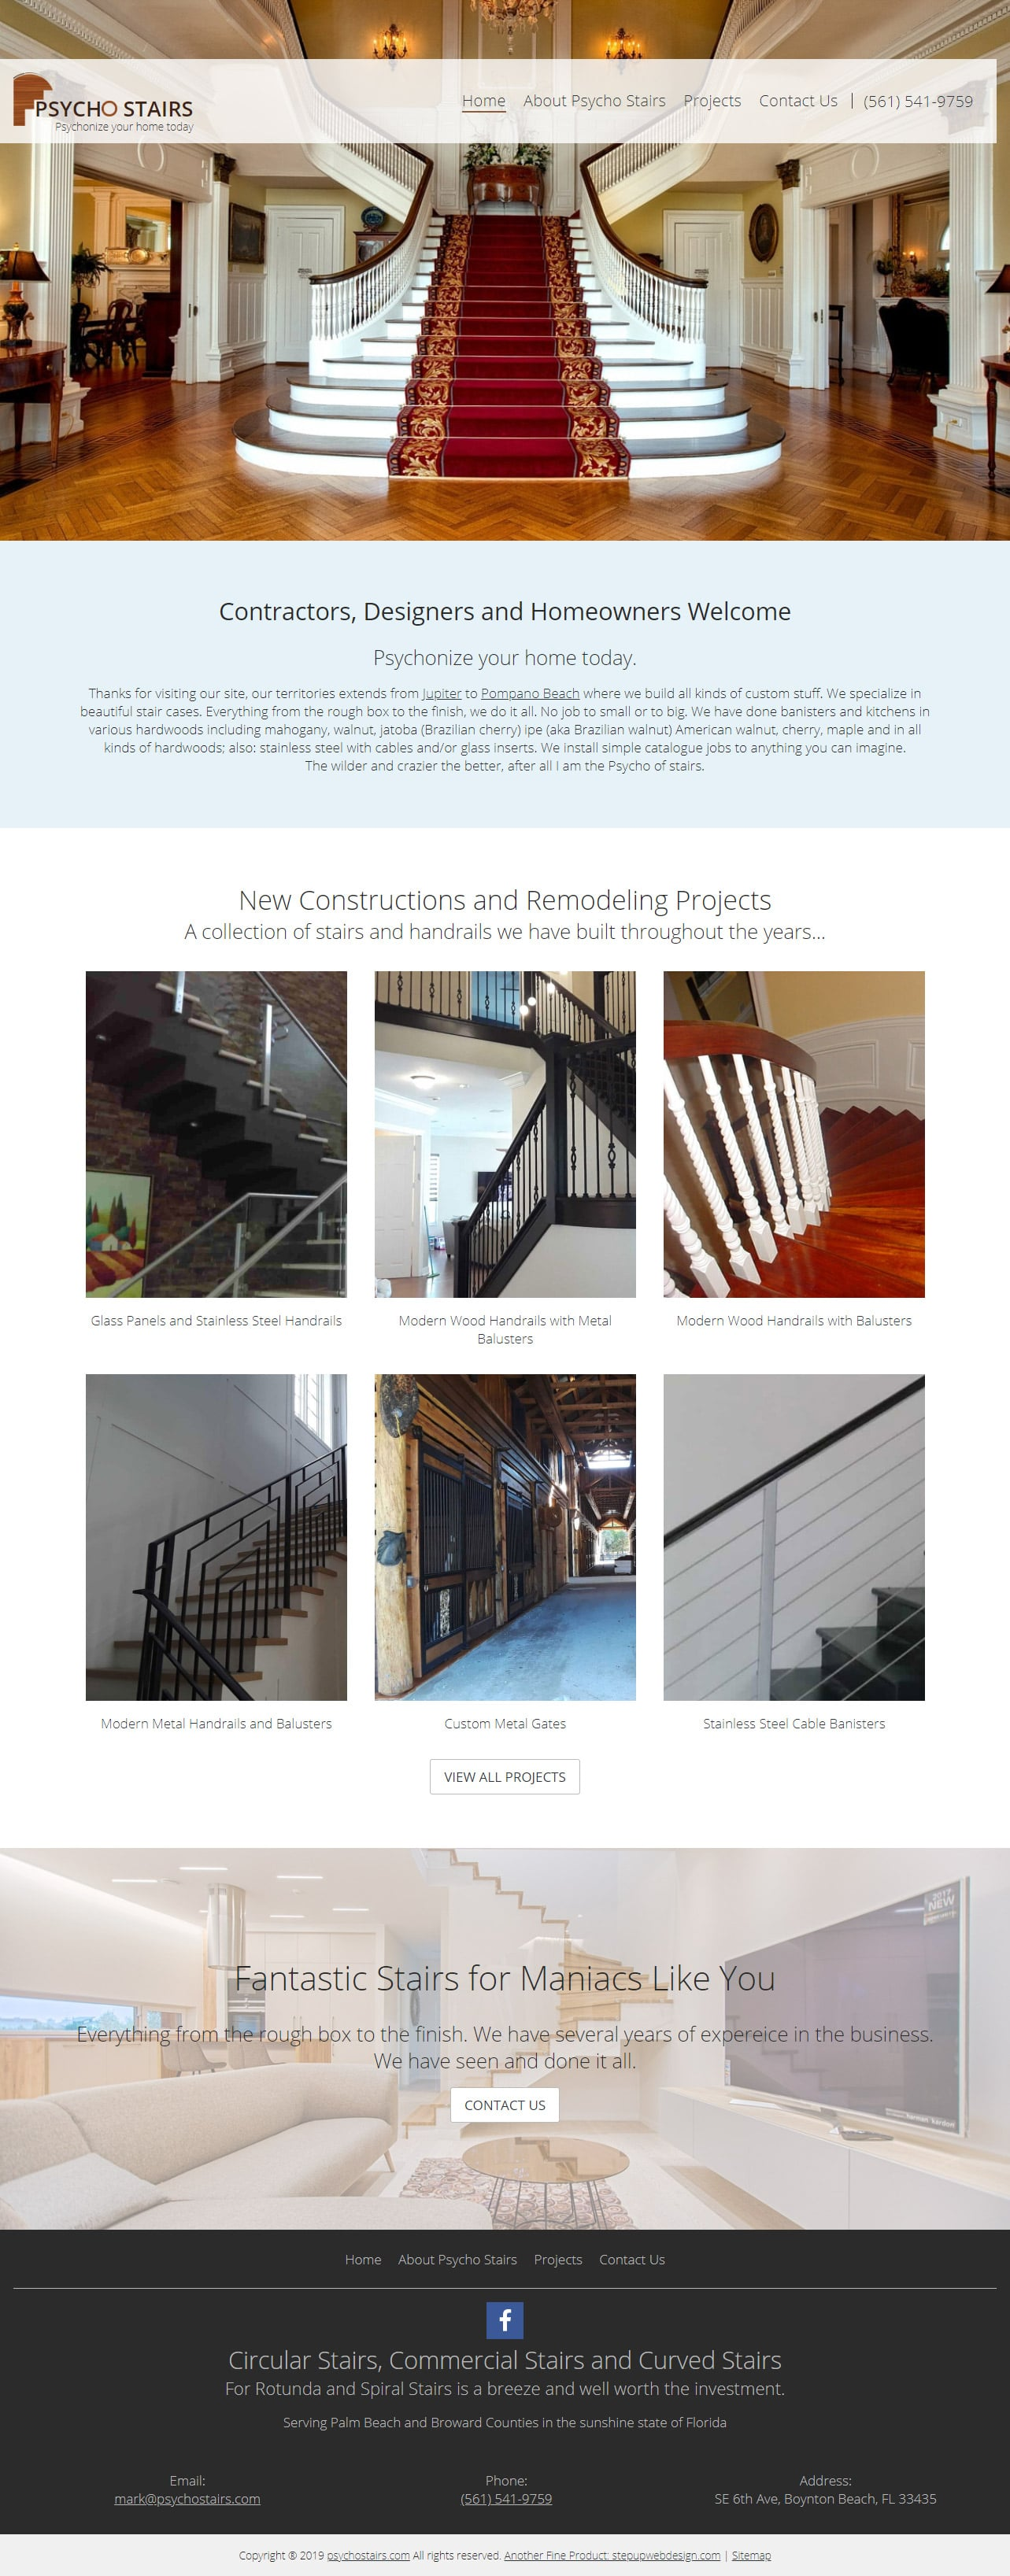 Psycho Stairs Homepage Design